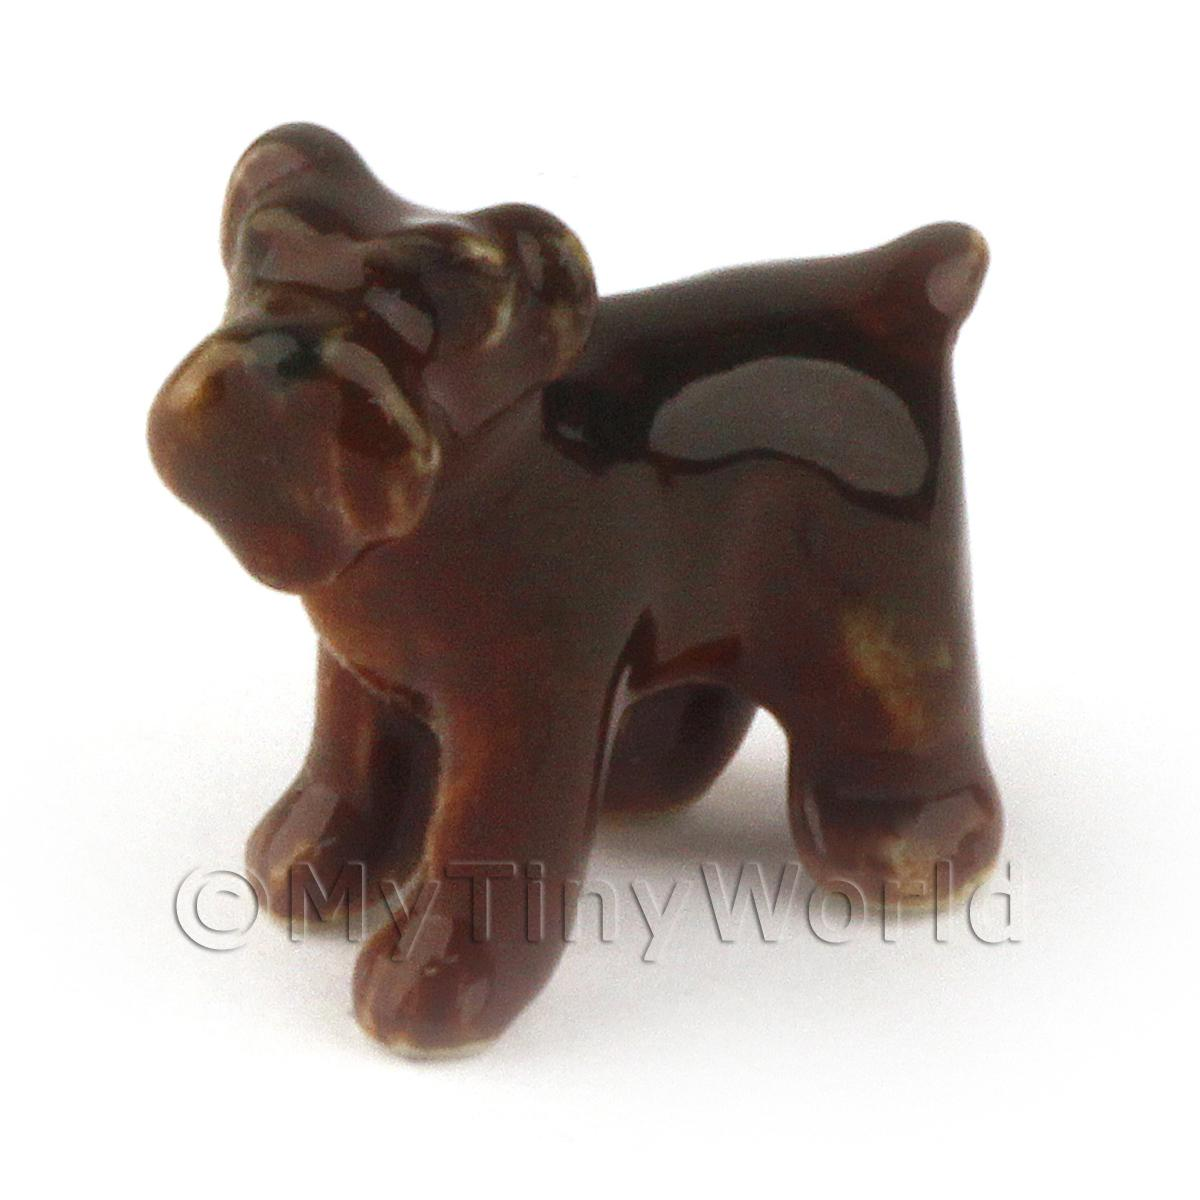 Dolls House Miniature Ceramic Airedale Puppy